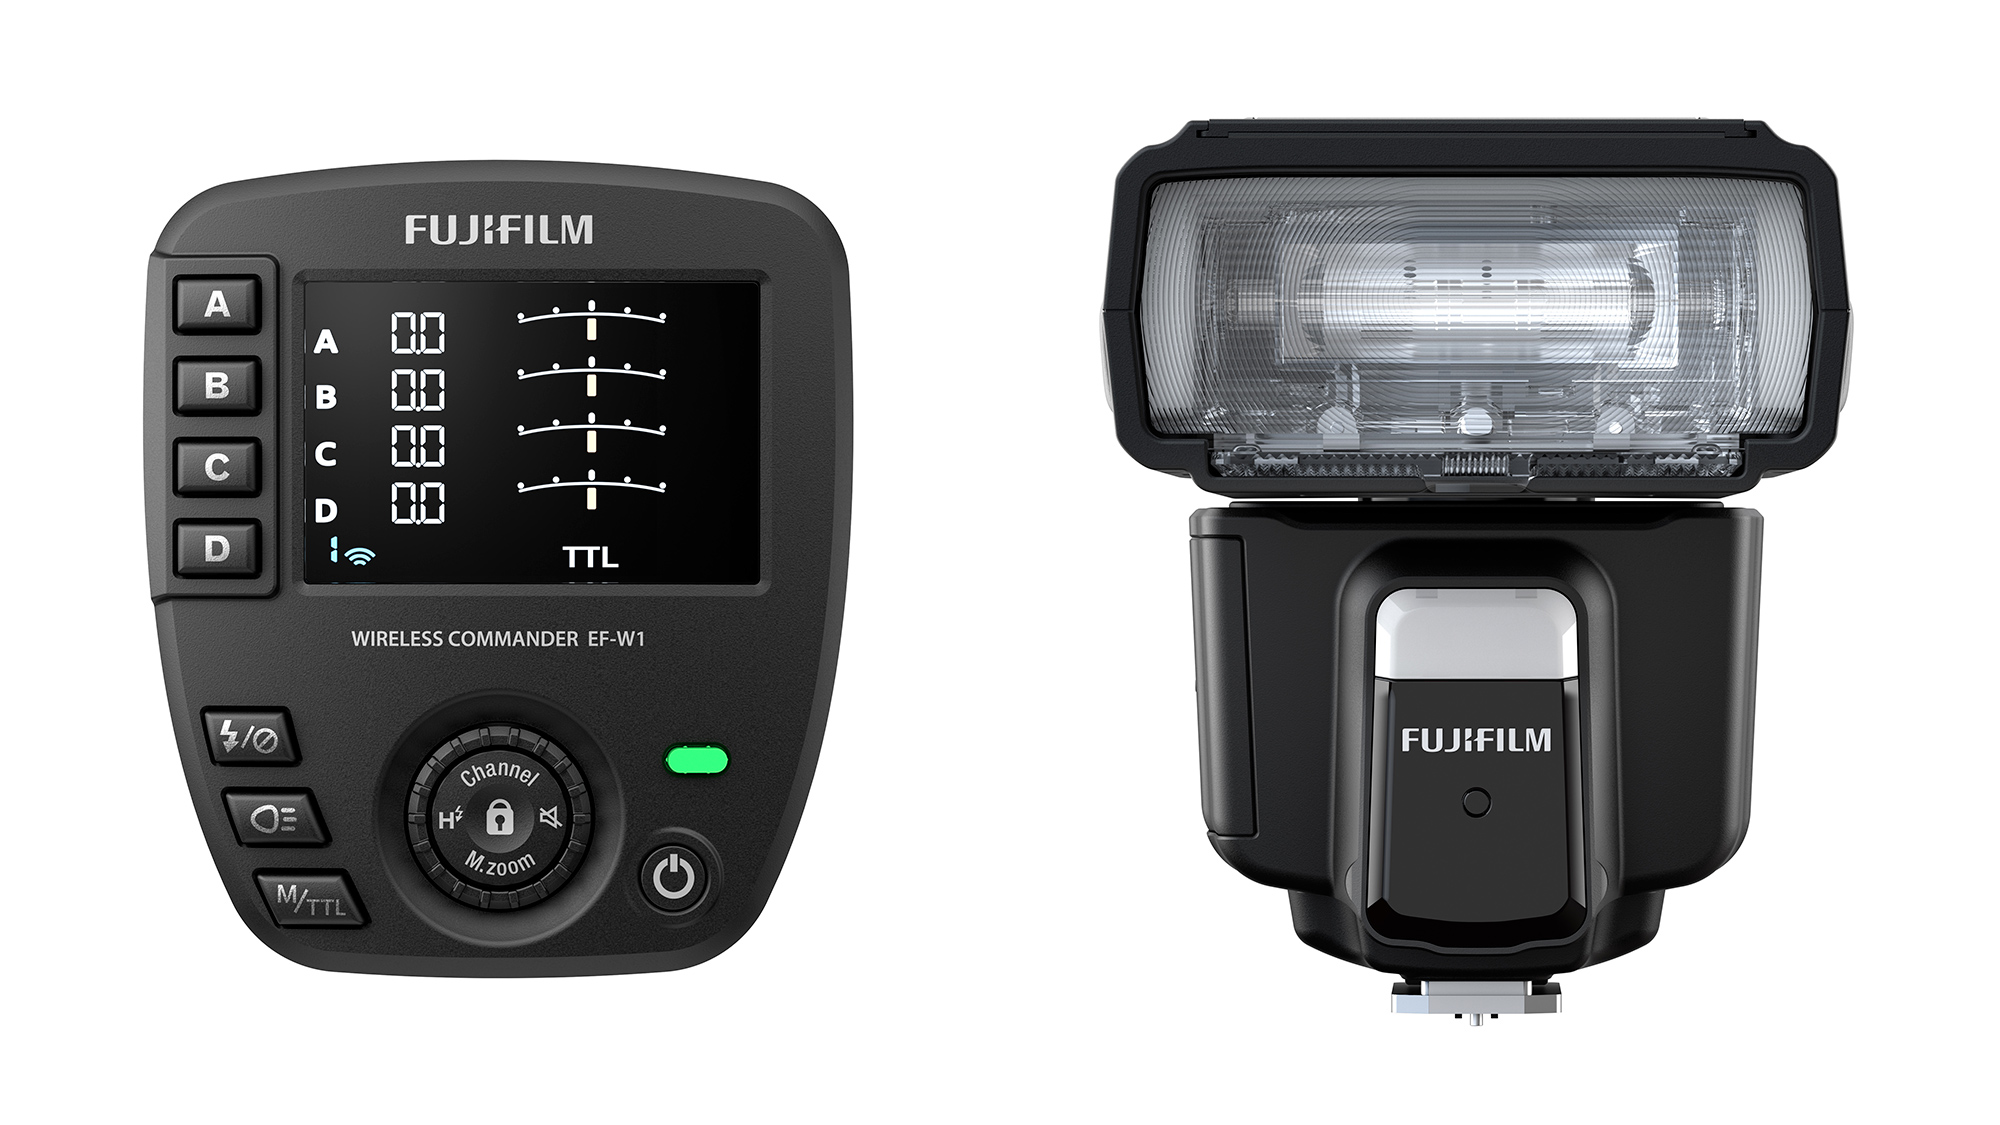 Fujifilm Introduces the EF-60 Shoe Mount Flash and EF-W1 Wireless Commander for X Series and GFX System cameras